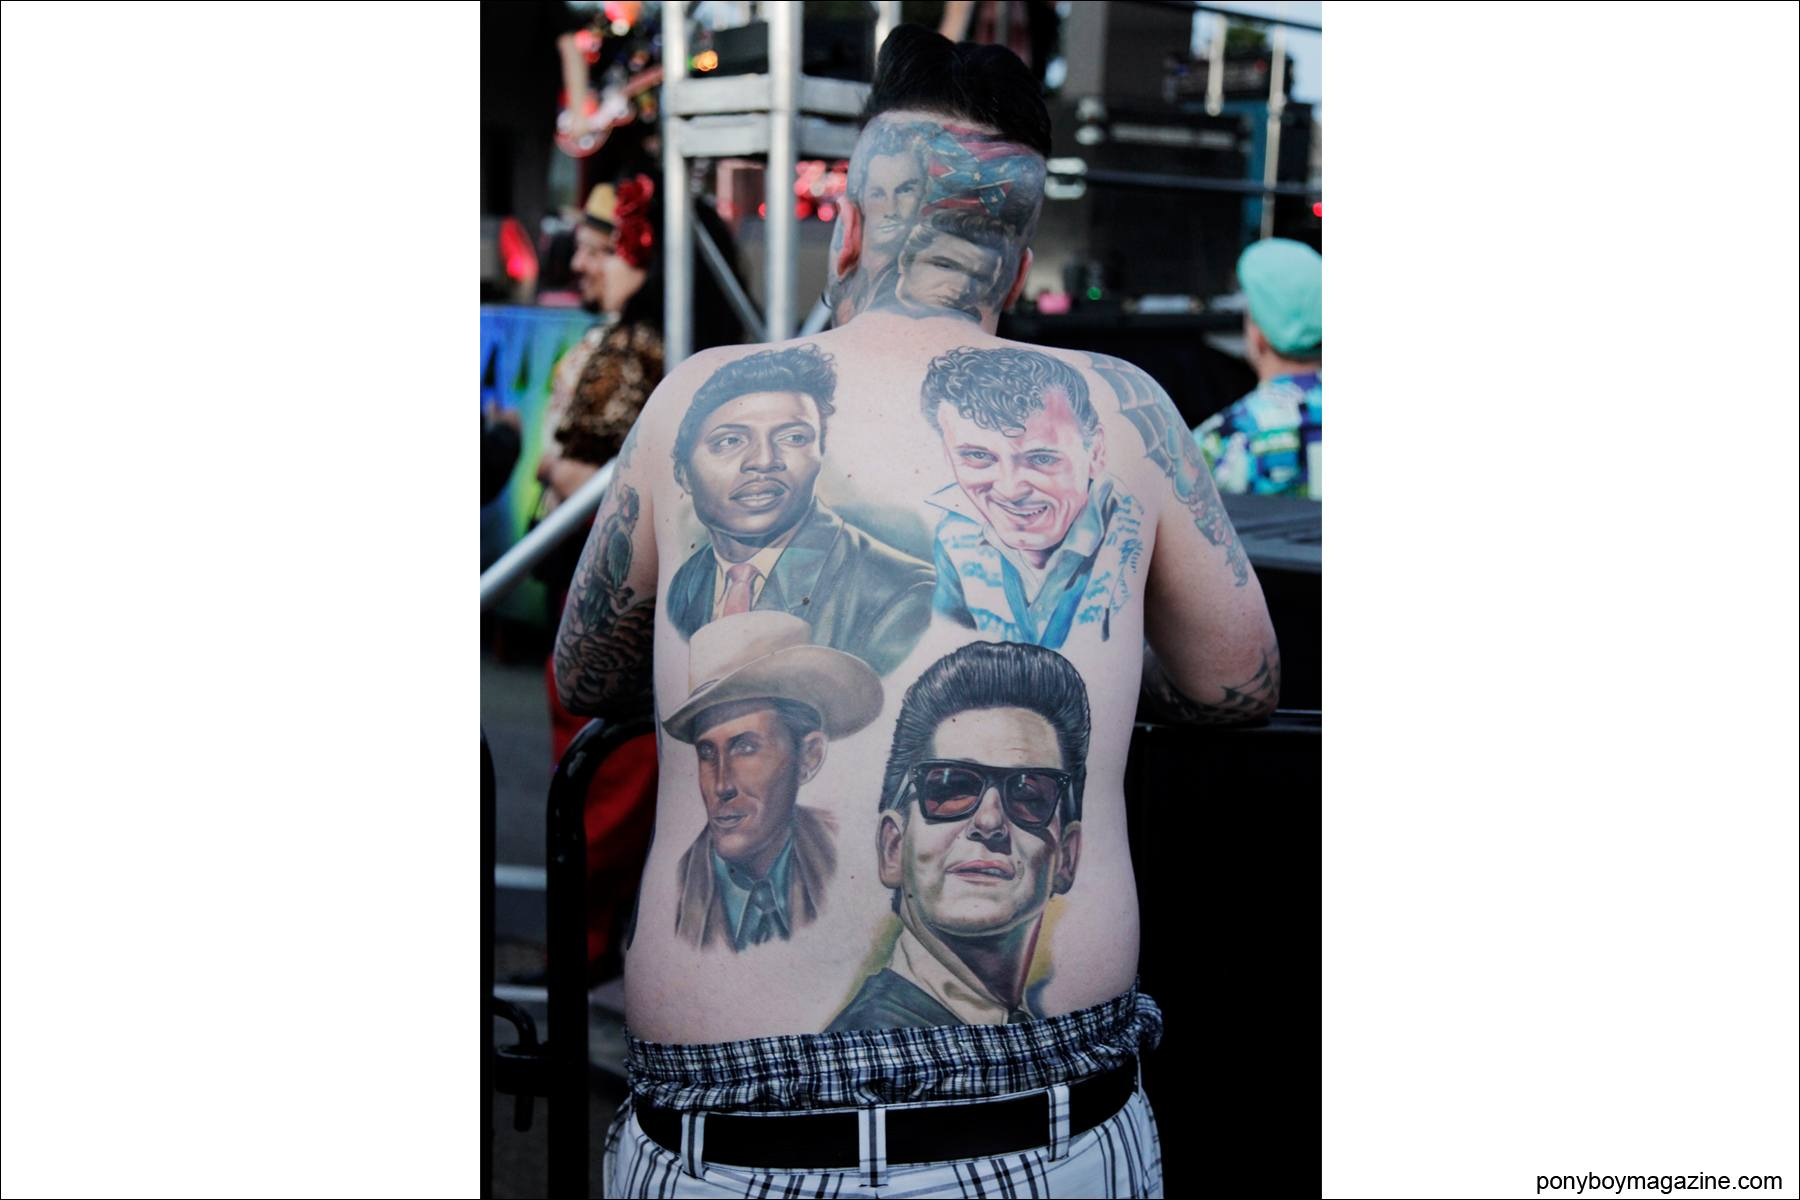 A tattooed rockabilly fan watched Robert Gordon onstage at Tom Ingram's Viva Las Vegas 17 weekender. Photograph by Alexander Thompson for Ponyboy Magazine.